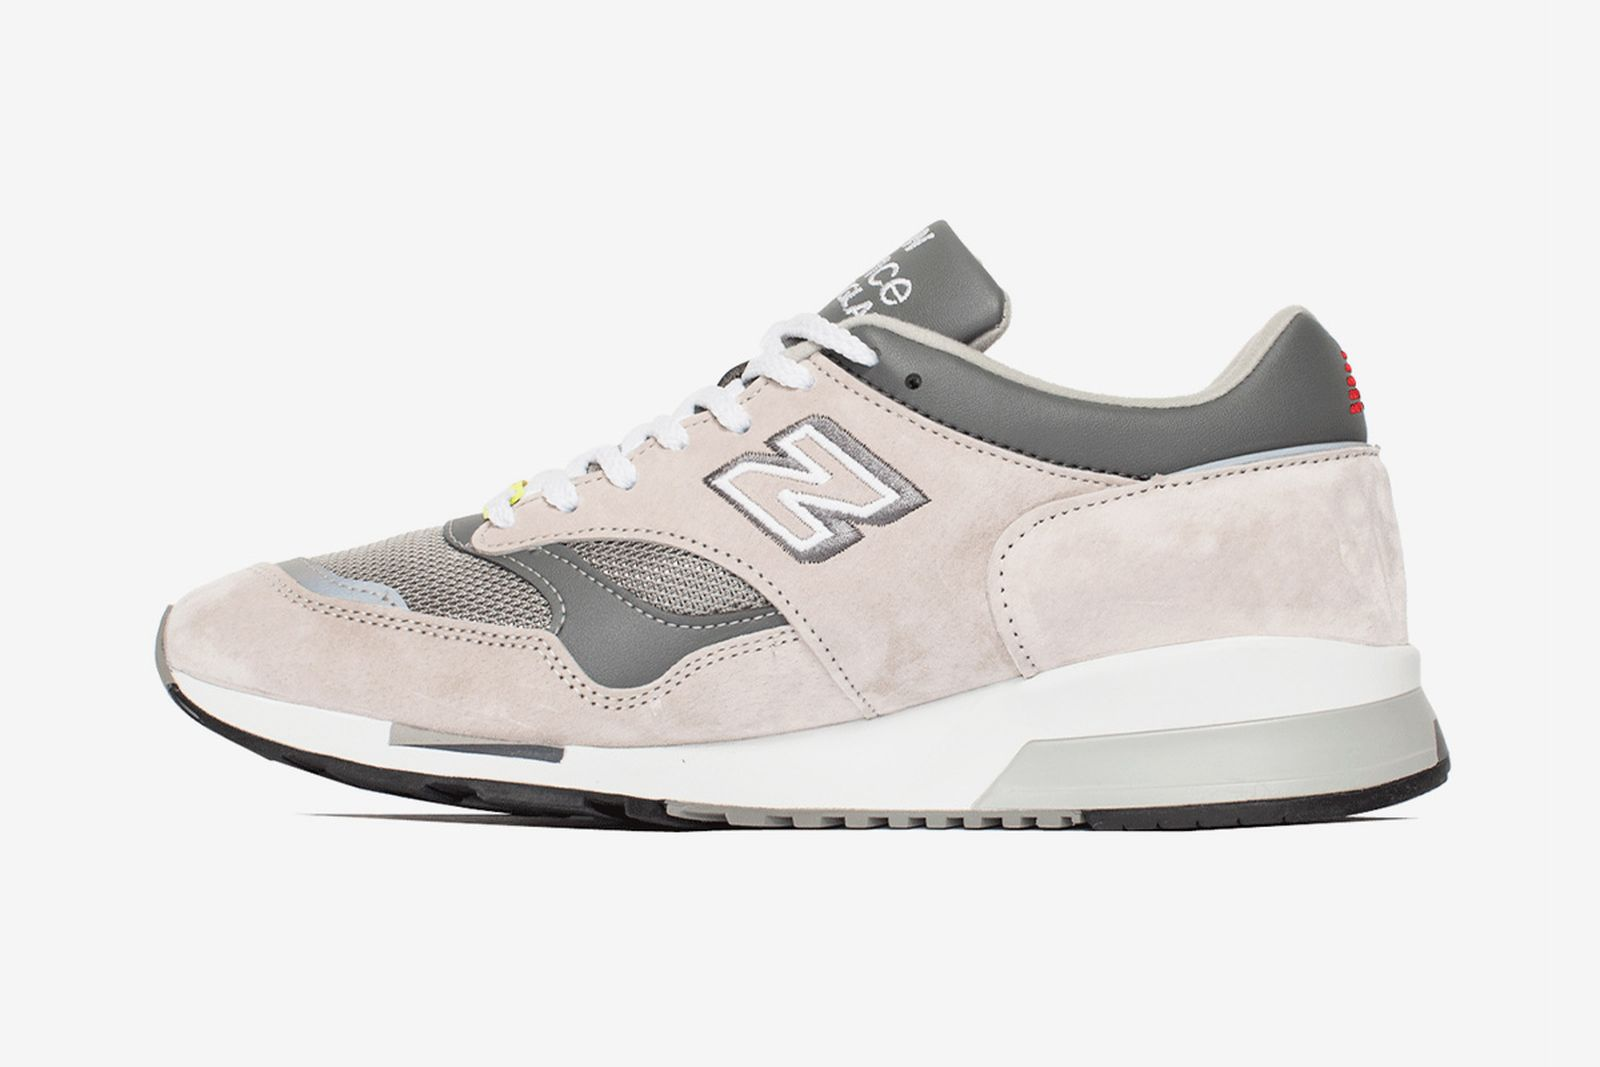 one-block-down-new-balance-991-release-date-price-03